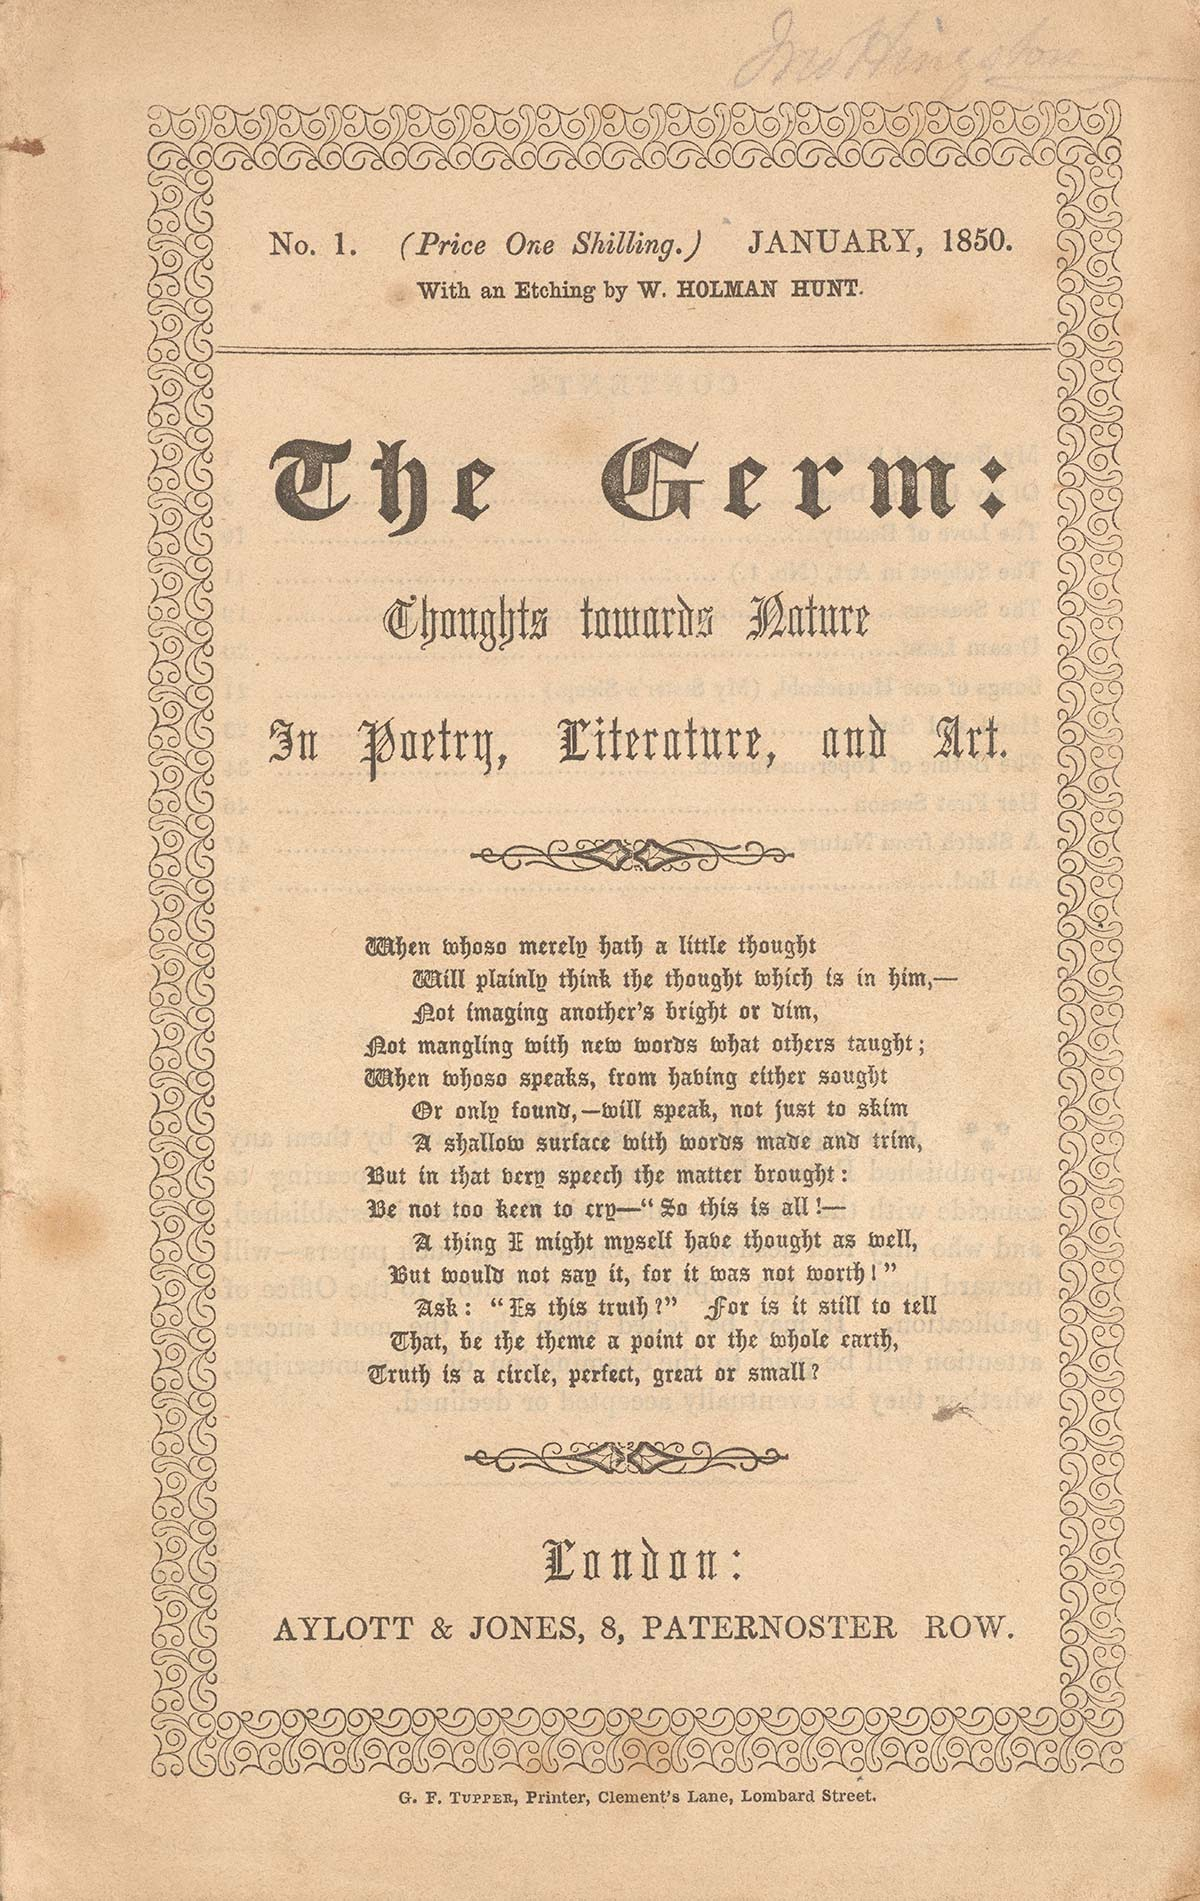 The Germ: Thoughts towards Nature in Poetry, Literature, and Art (January 1850). Letterpress, 8 3/4 x 5 3/8 in. (22.2 x 14 cm). Published by Aylott & Jones, London. Collection of Joseph and Deborah Goldyne